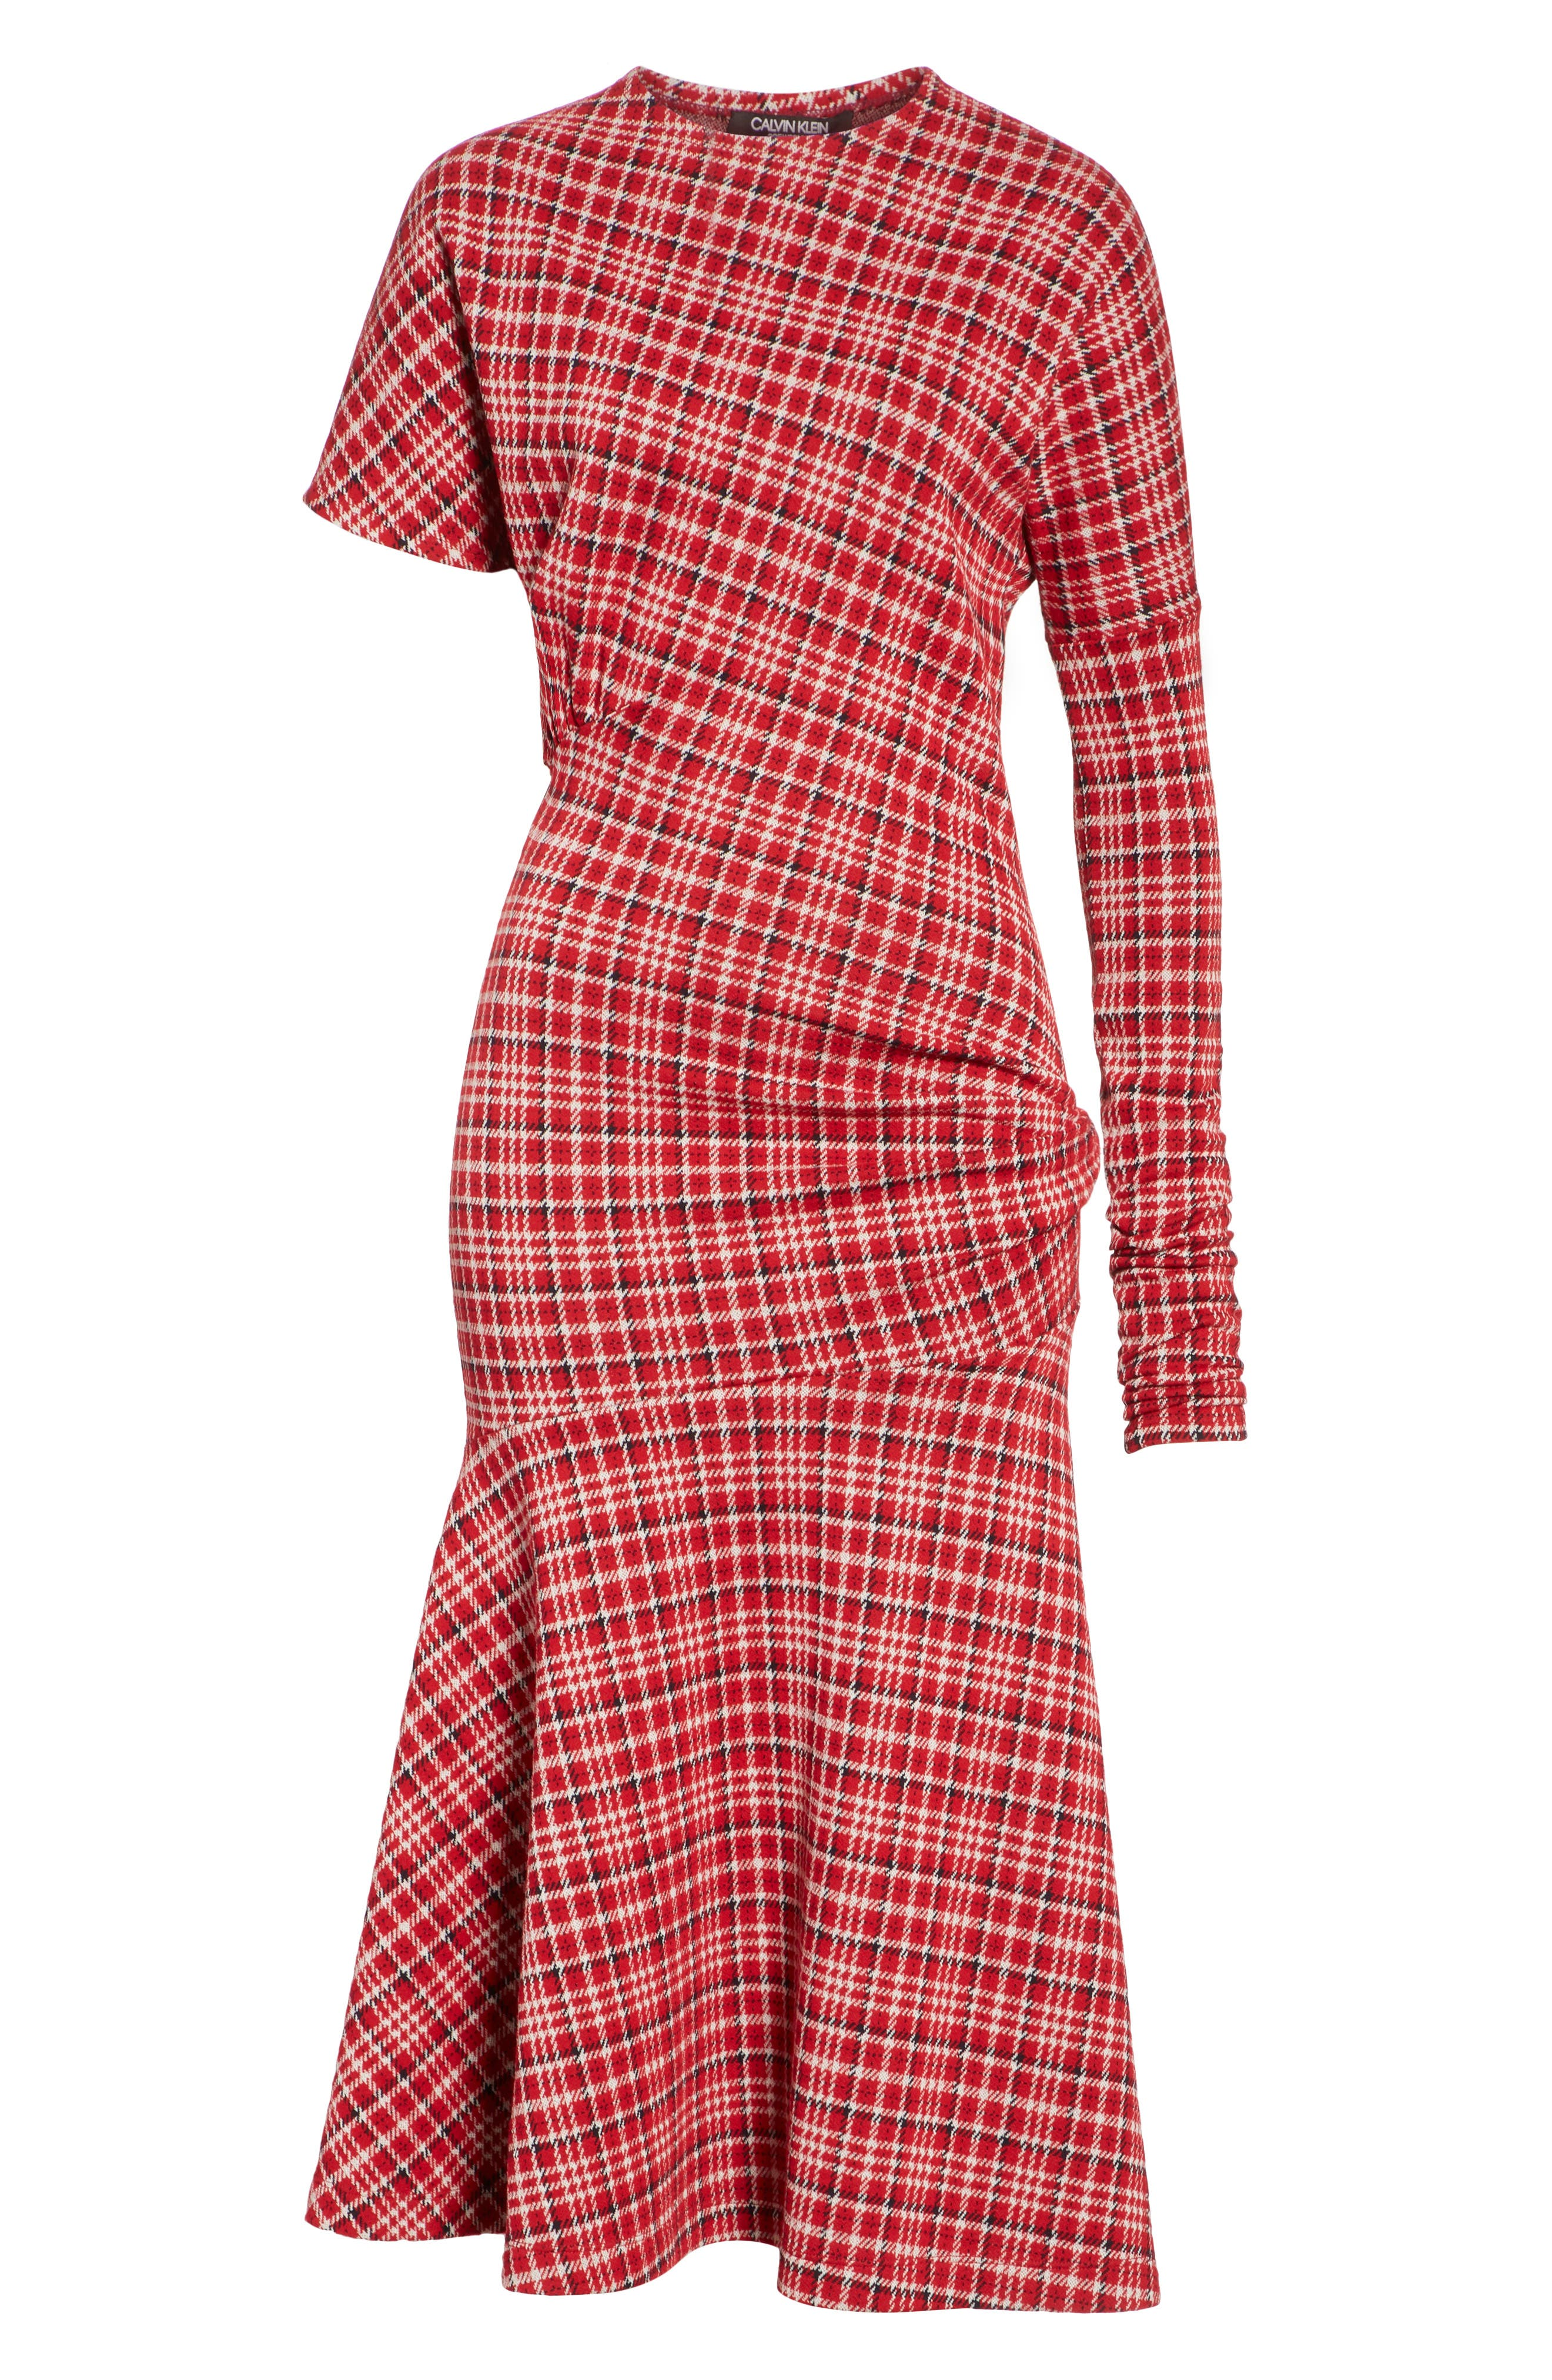 Tartan Asymmetrical Dress,                             Alternate thumbnail 6, color,                             649